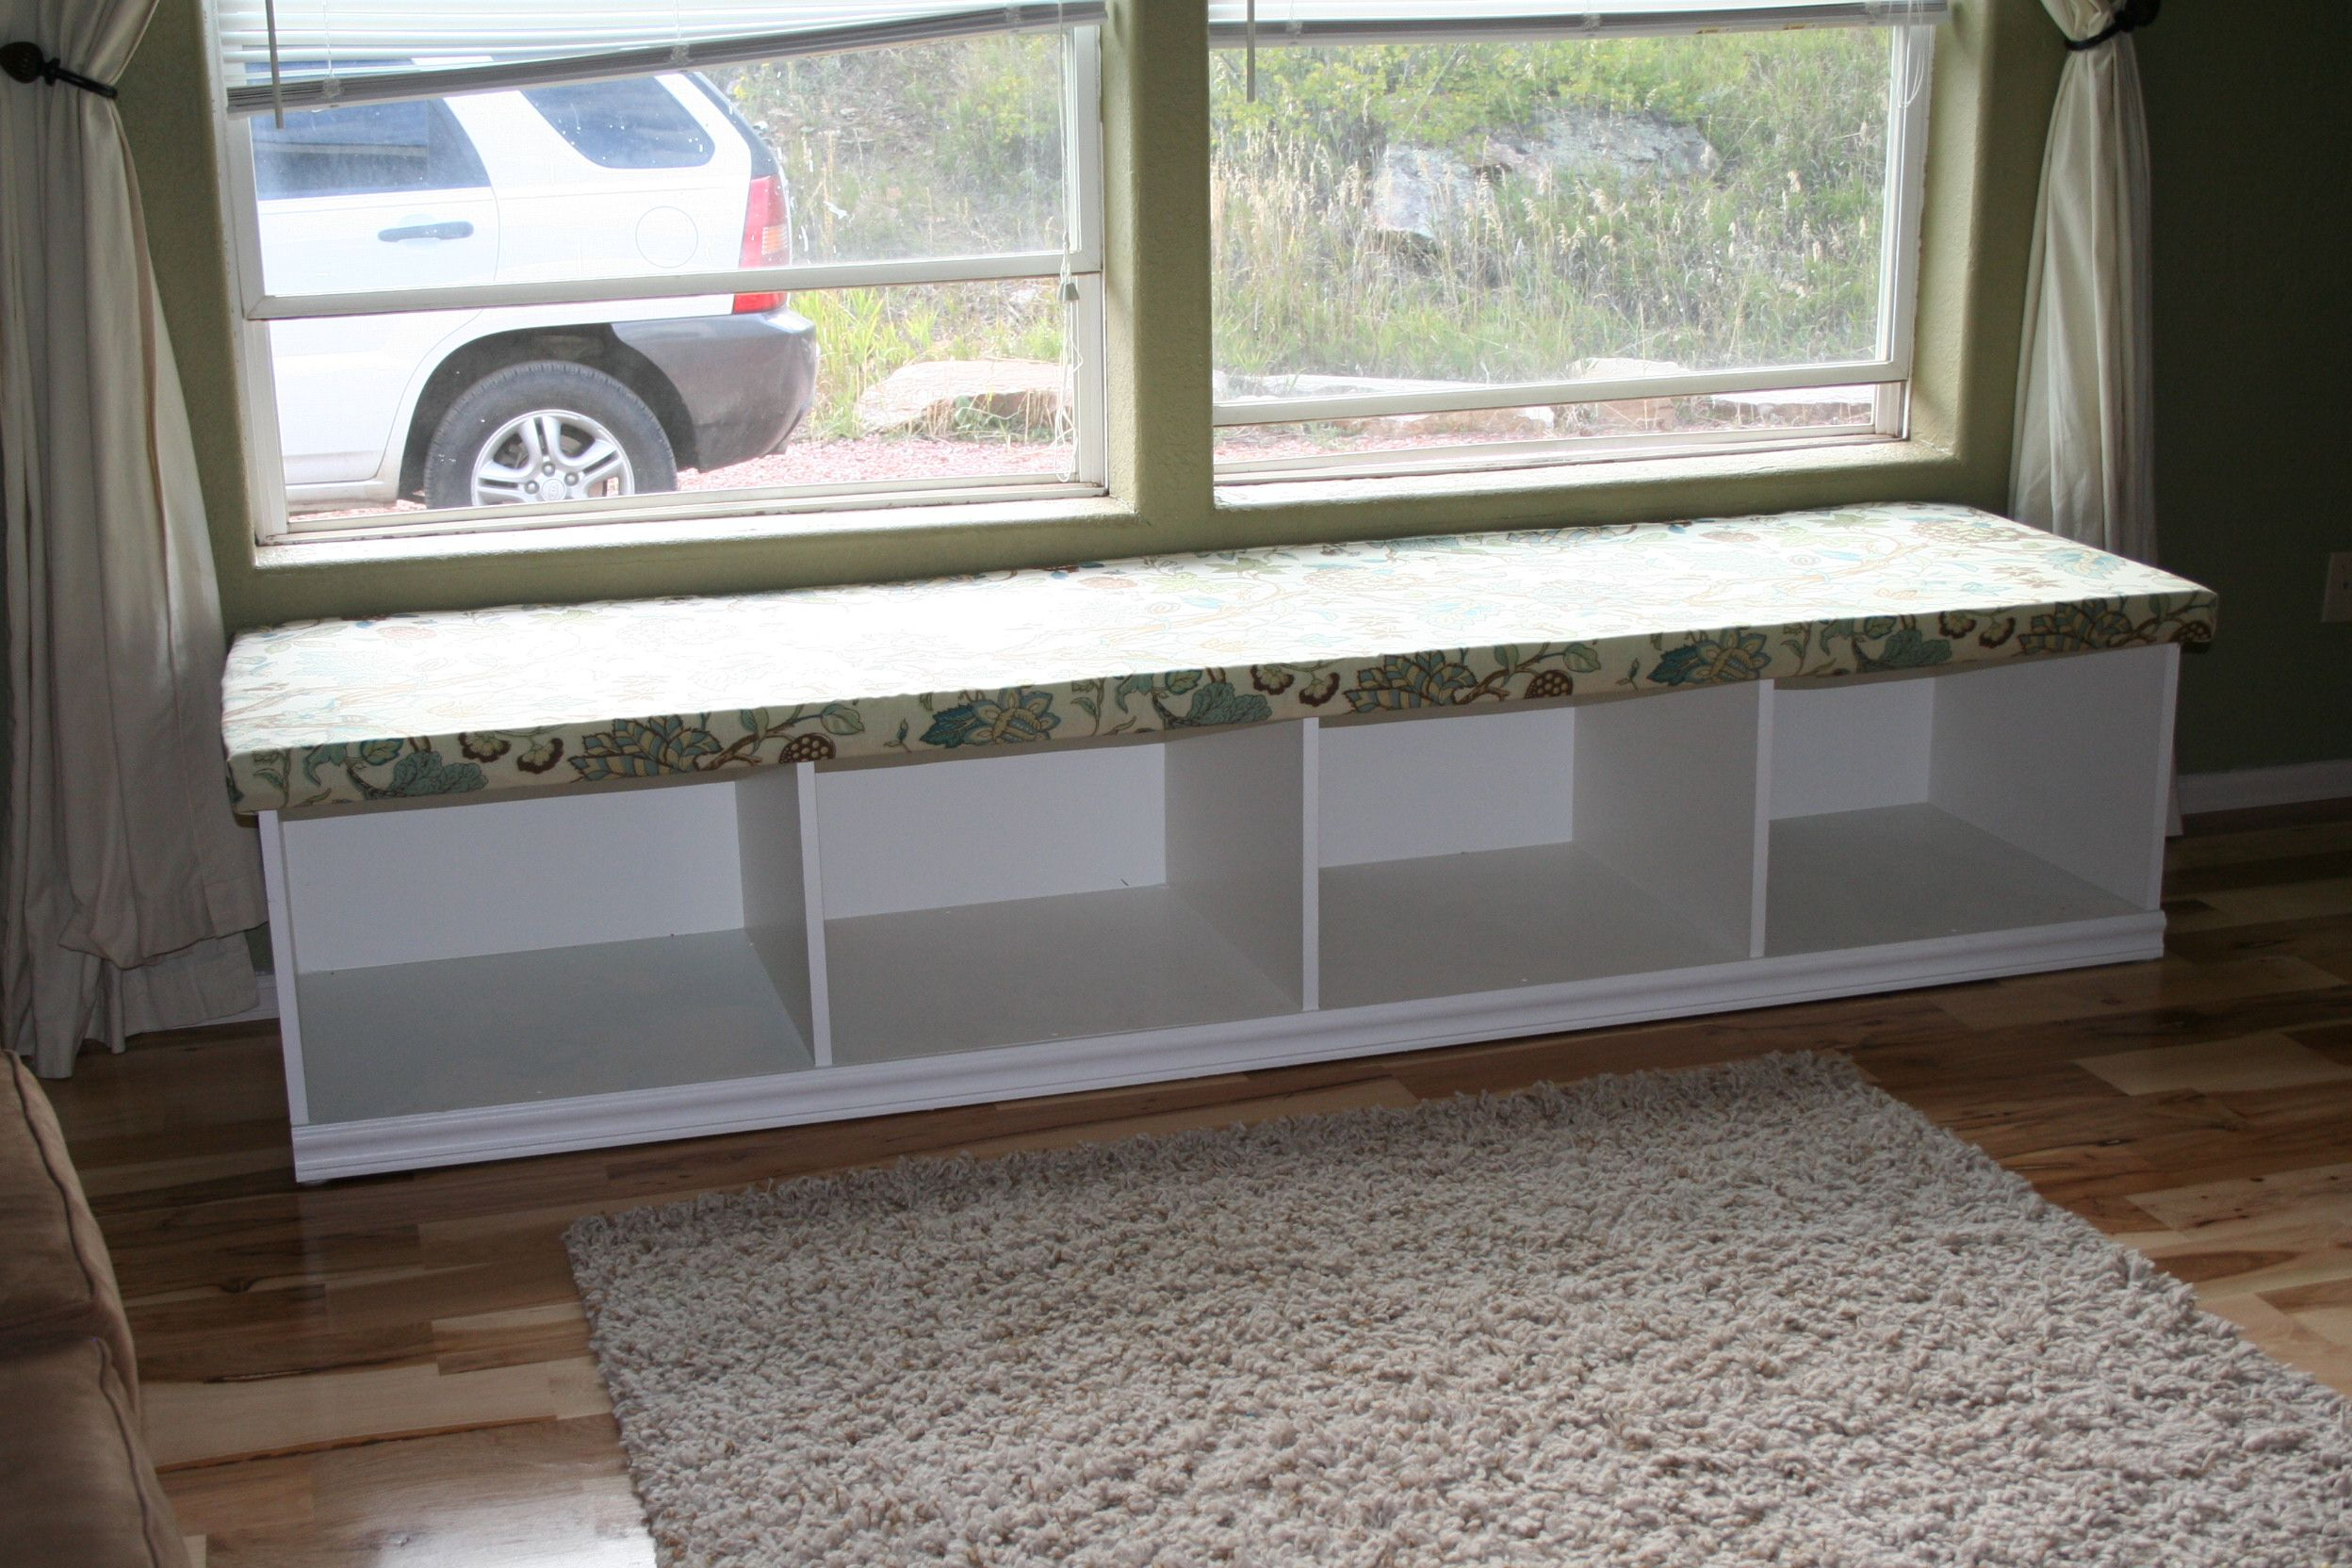 Exceptionnel Build Your Own Cubby Bench | Window Seat With Storage | Do It Yourself Home  Projects From Ana White